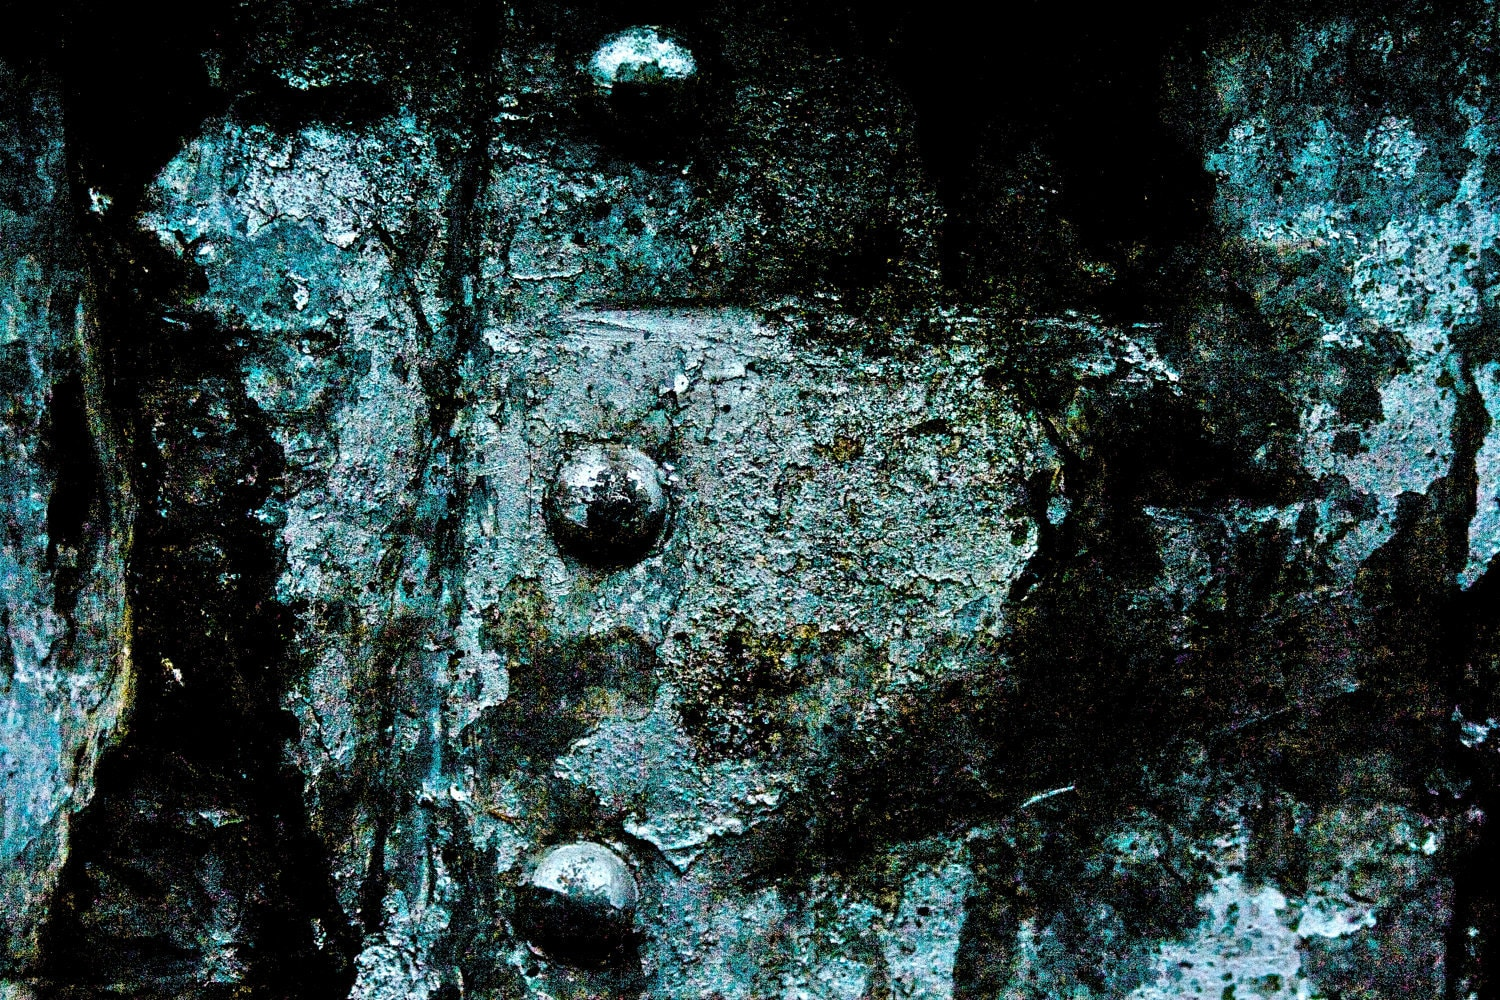 Abstract Fine Art Photography Industrial Metal by sherilwright: www.etsy.com/listing/92266618/abstract-fine-art-photography-industrial